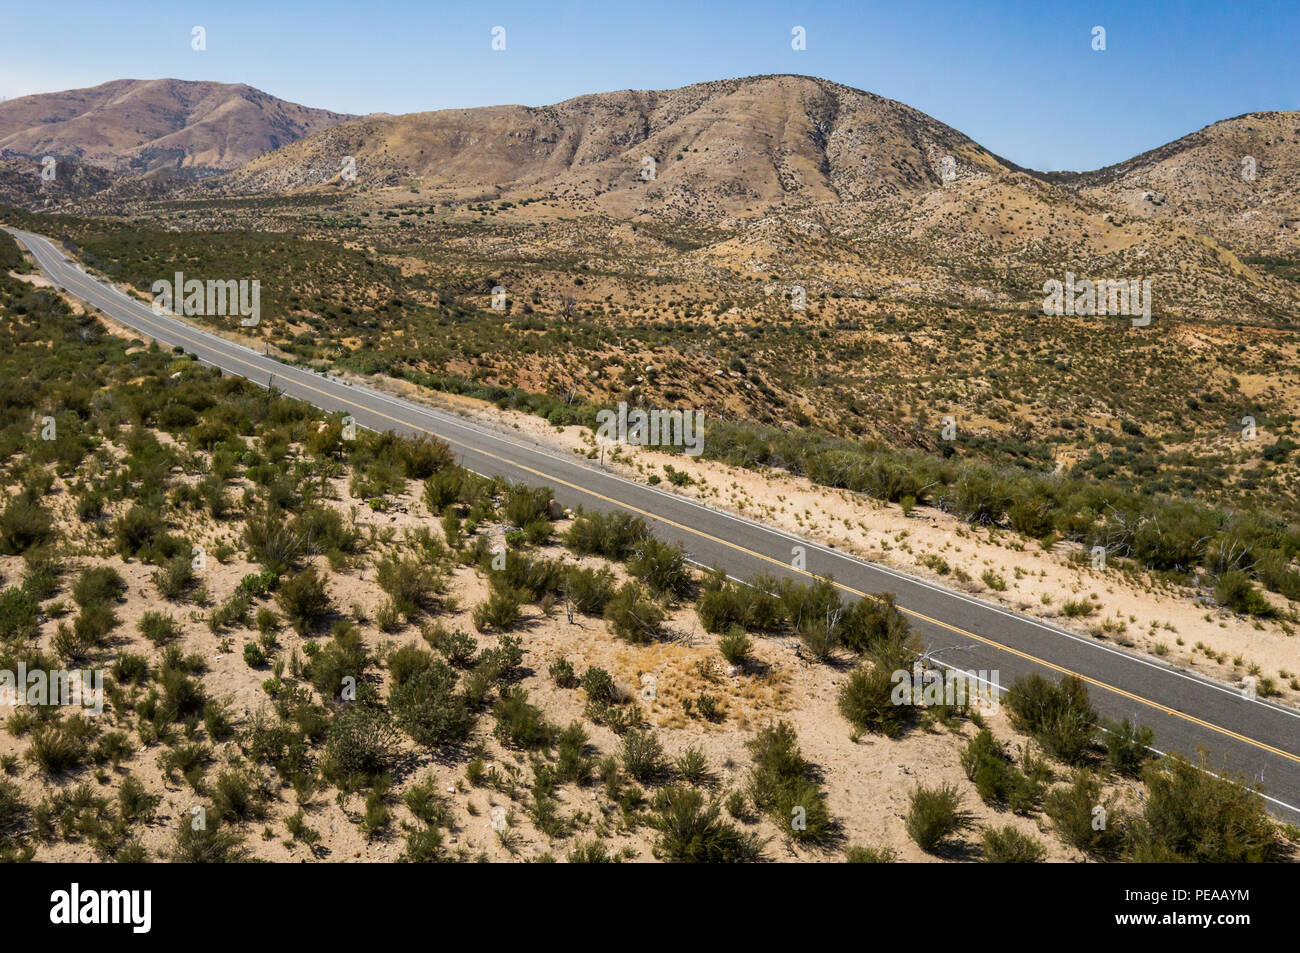 View of a desert roadway in the heart of the Mojave in southern California. - Stock Image